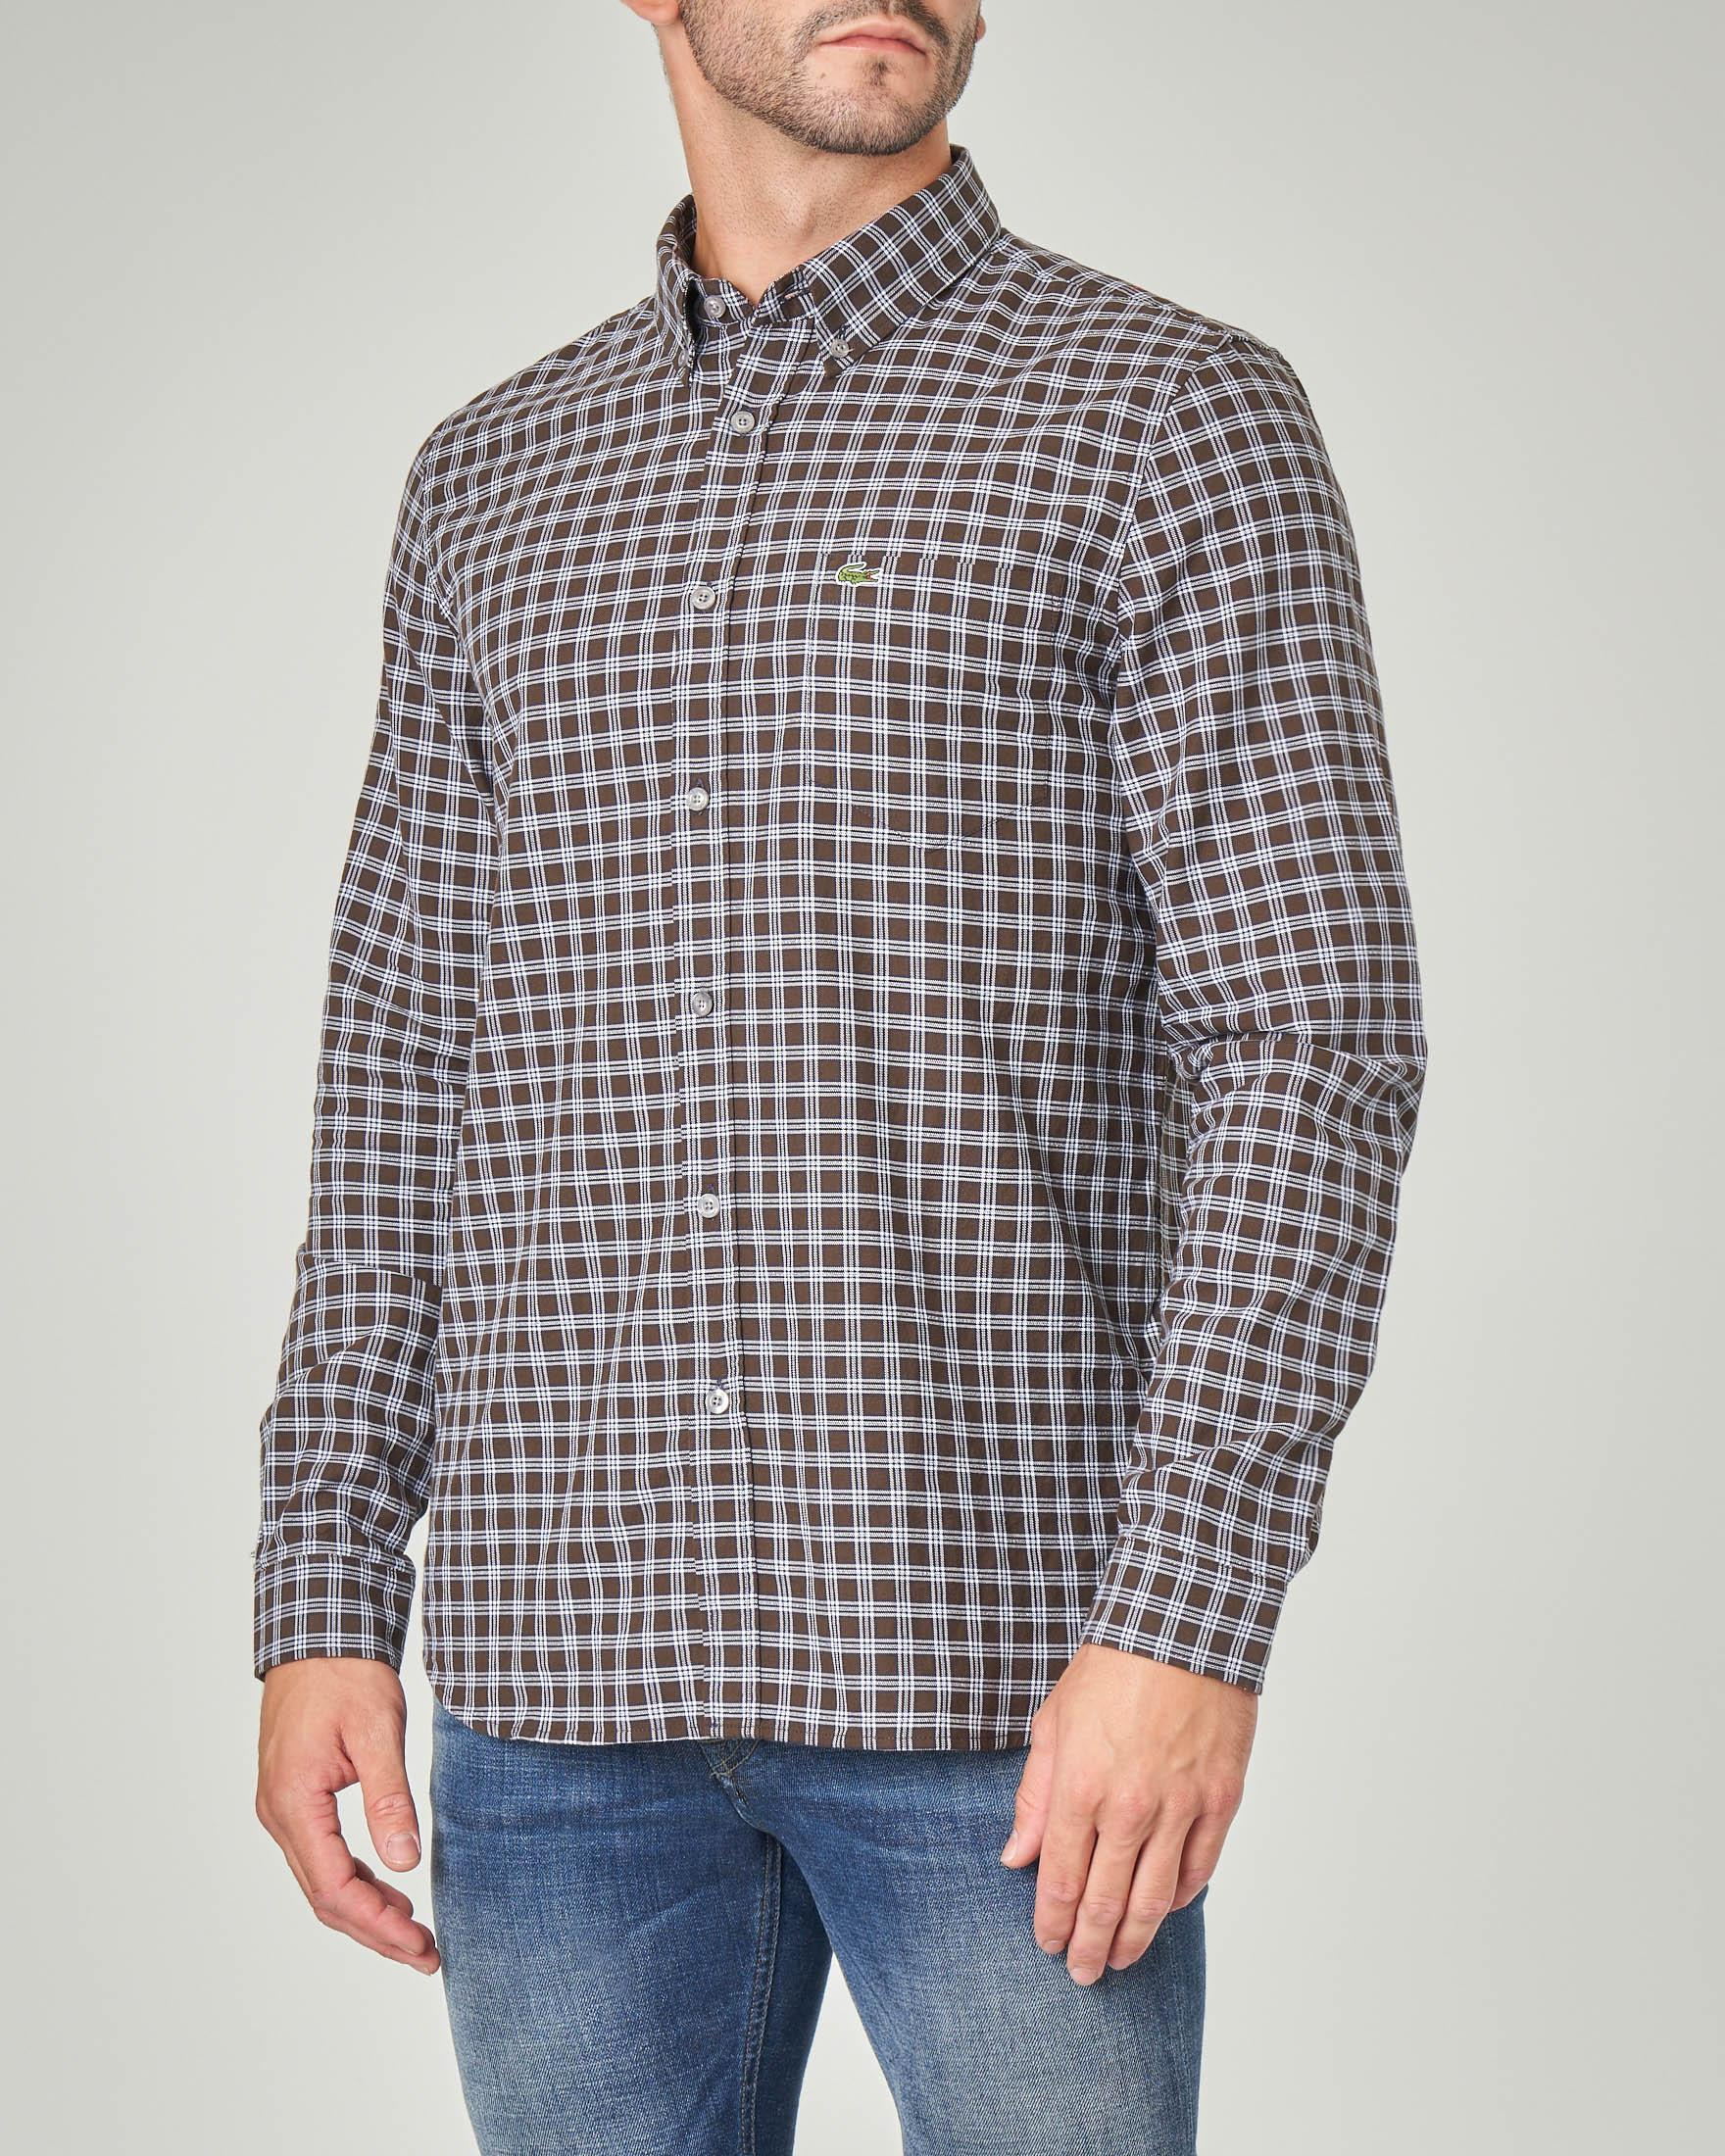 Camicia a quadretti con collo button down